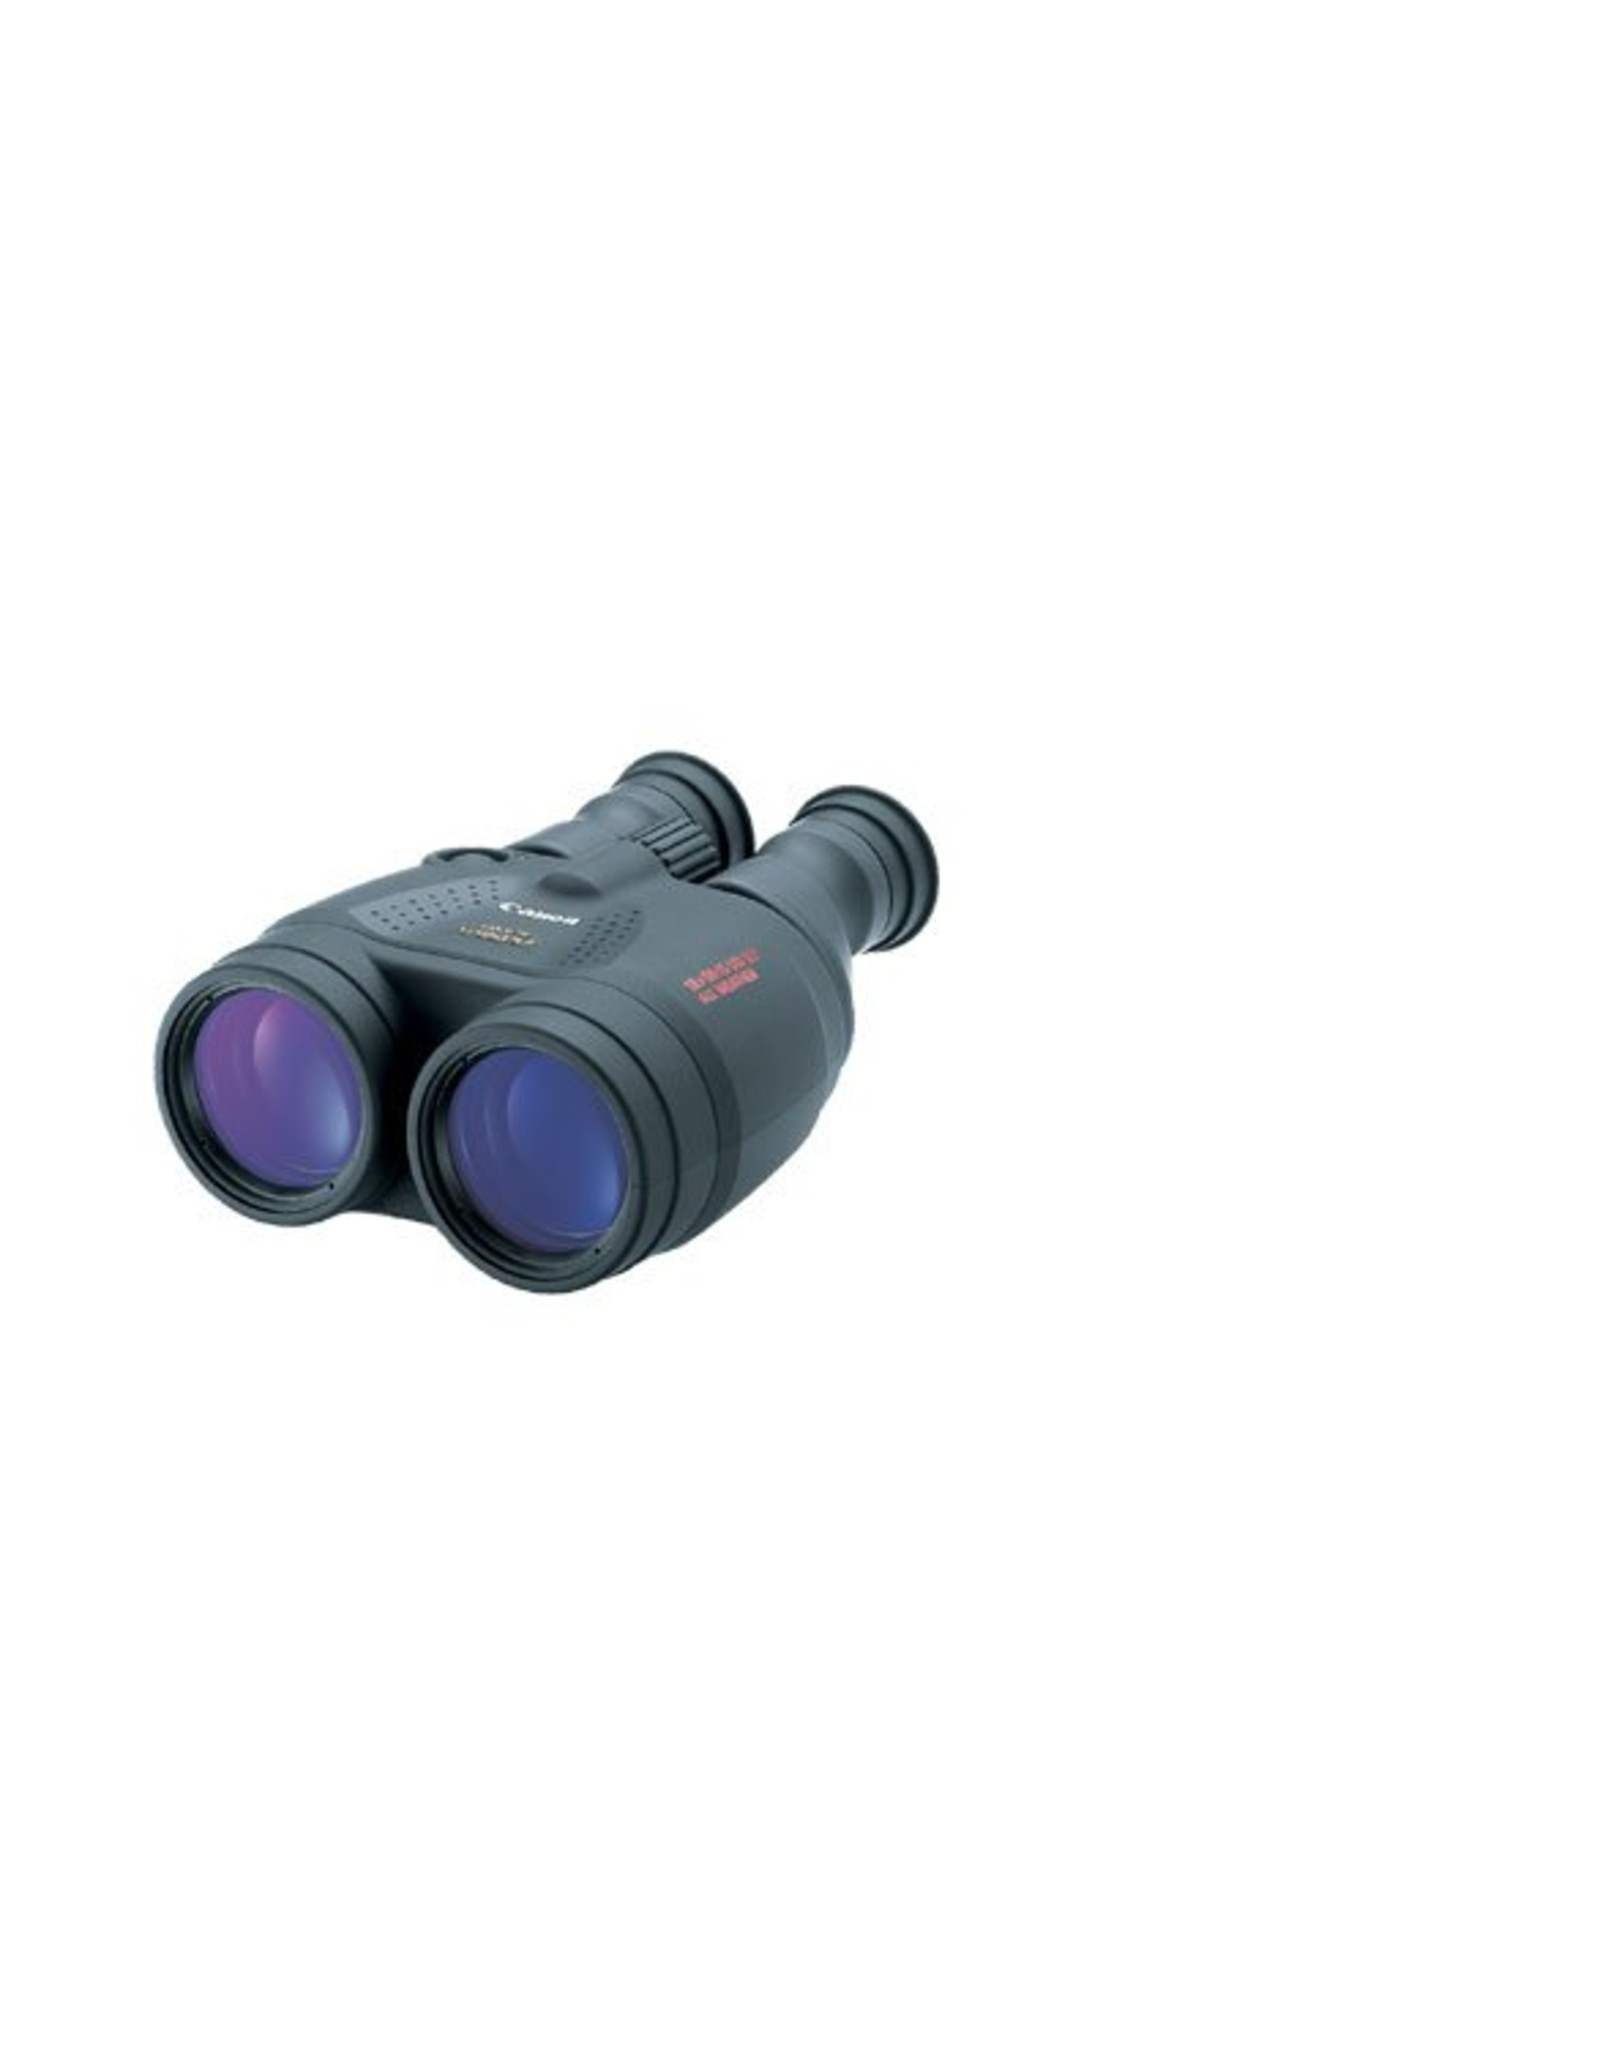 Canon Canon 18 X 50 IS All Weather (AW) Image Stabilized Binoculars